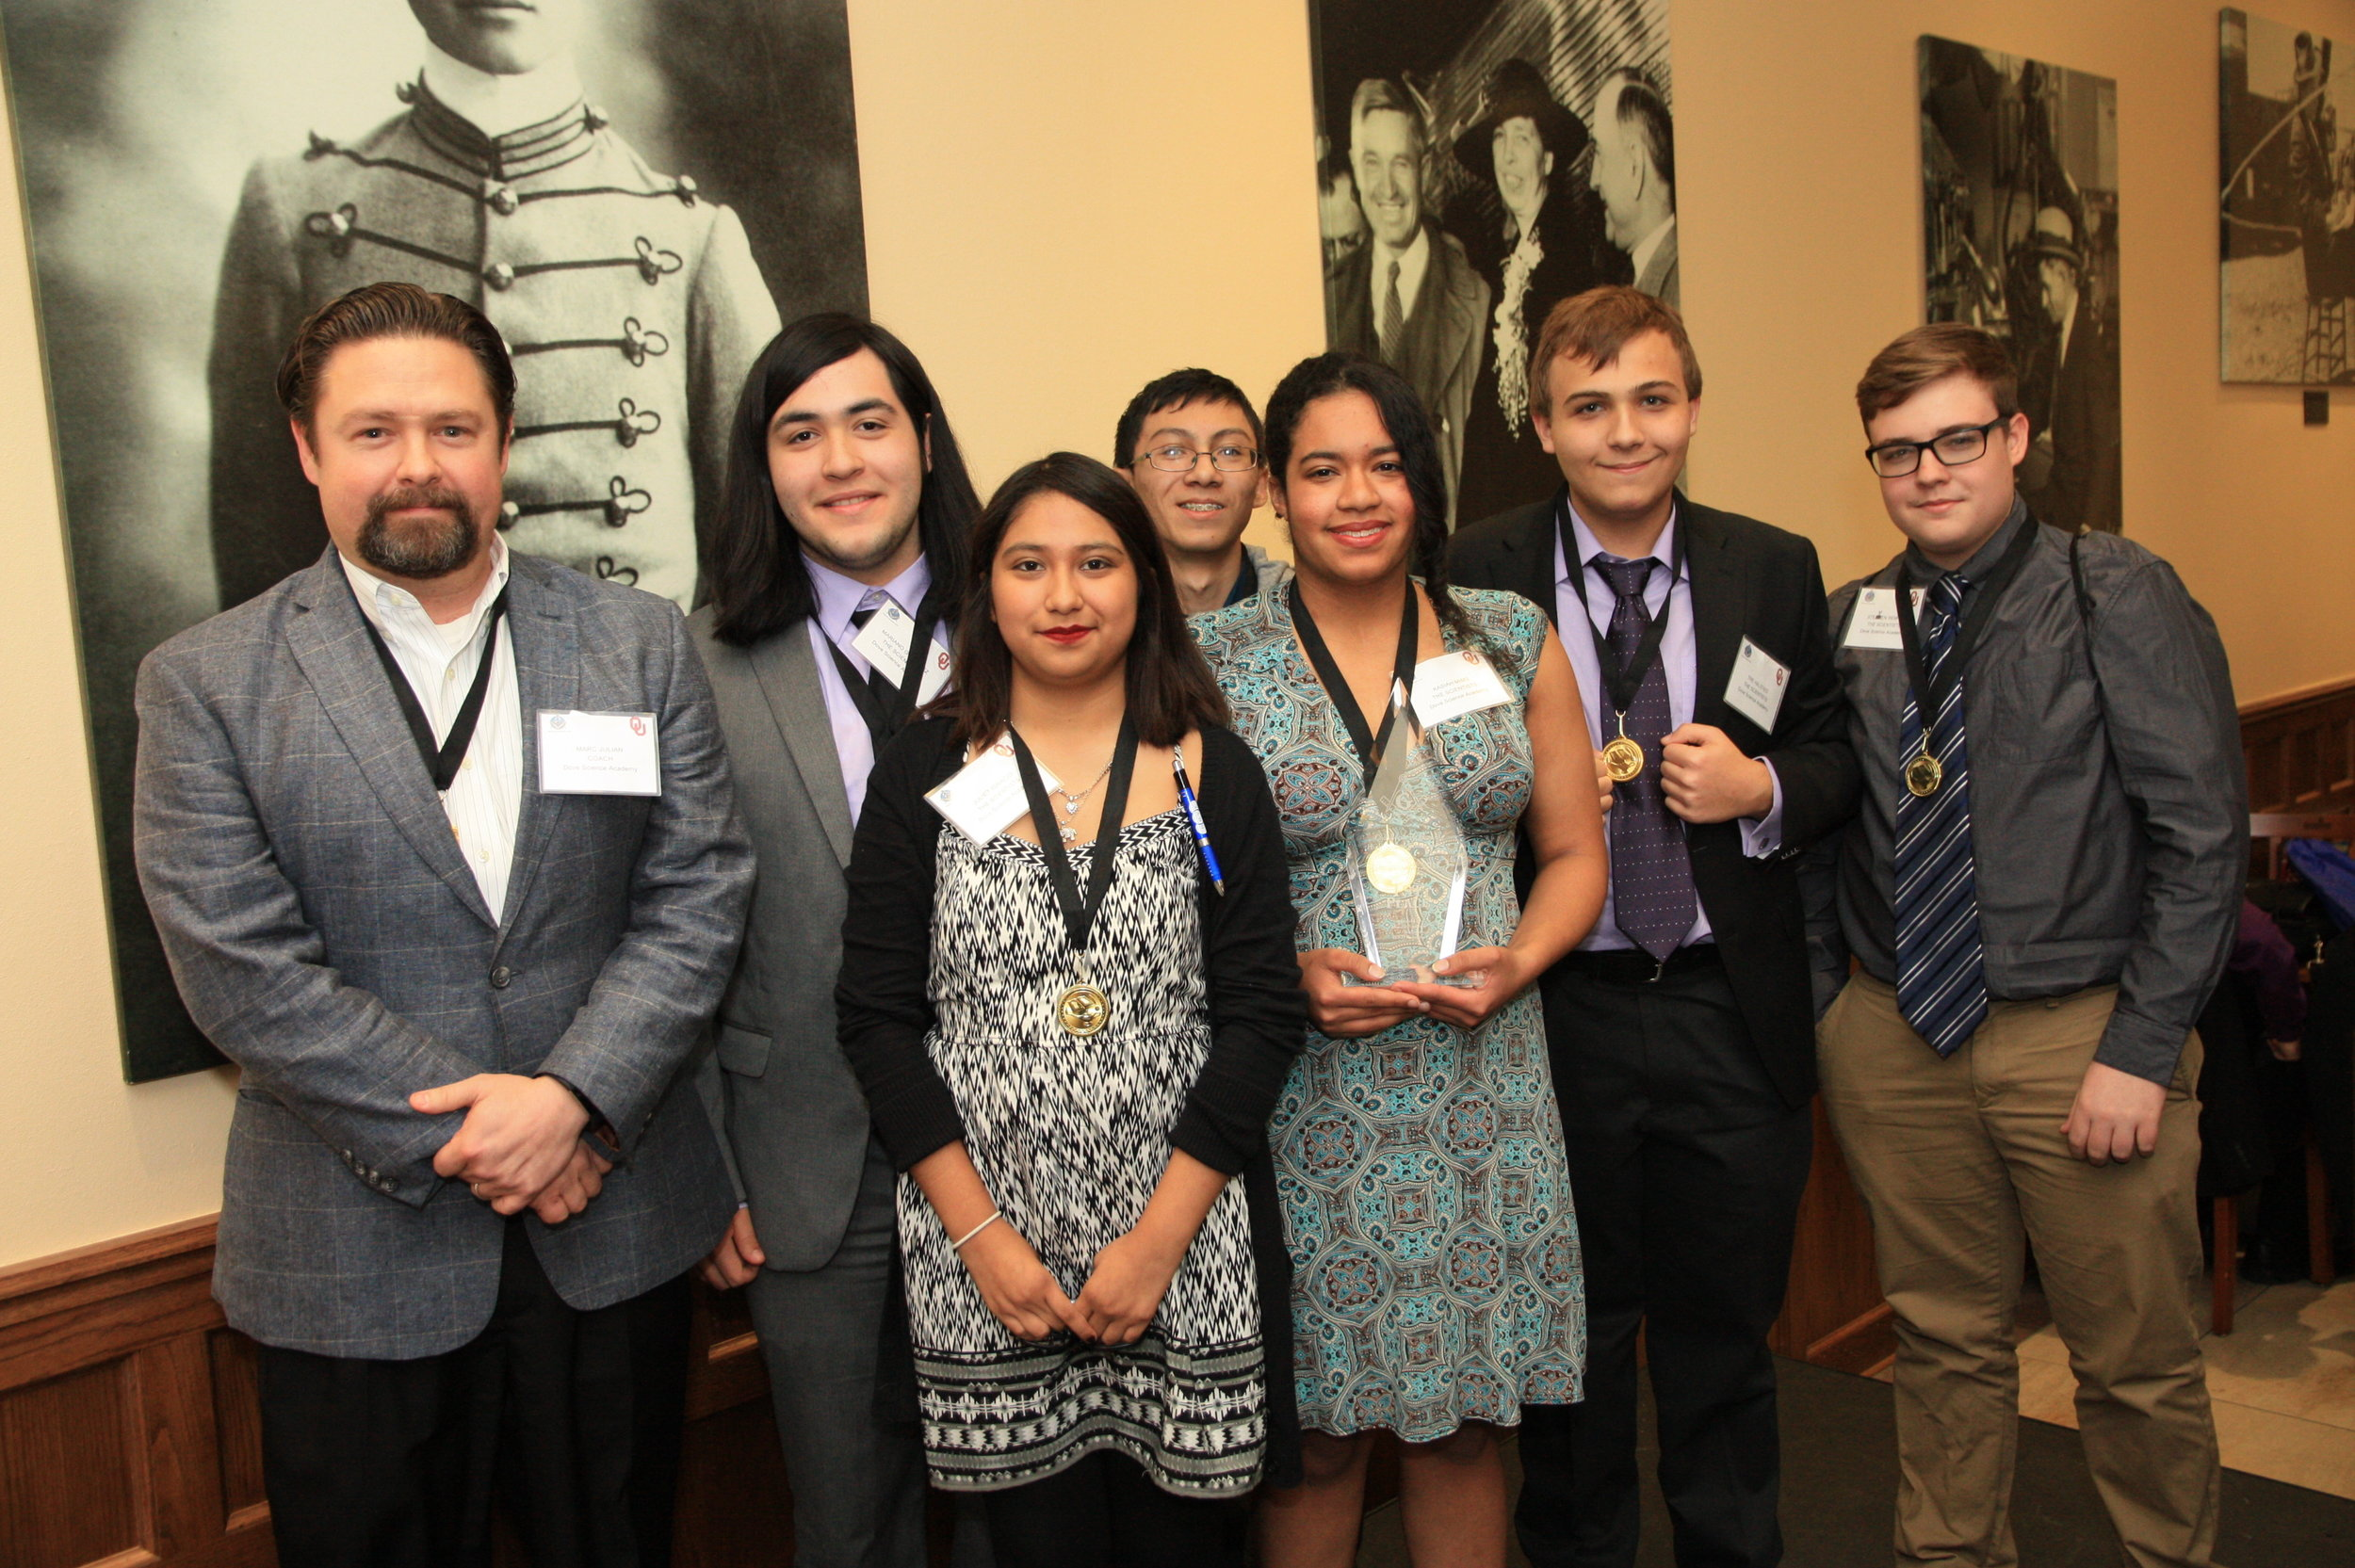 2017 1st Annual Oklahoma Region High School Ethics Bowl Winner Dove Science Academy - team Scientists